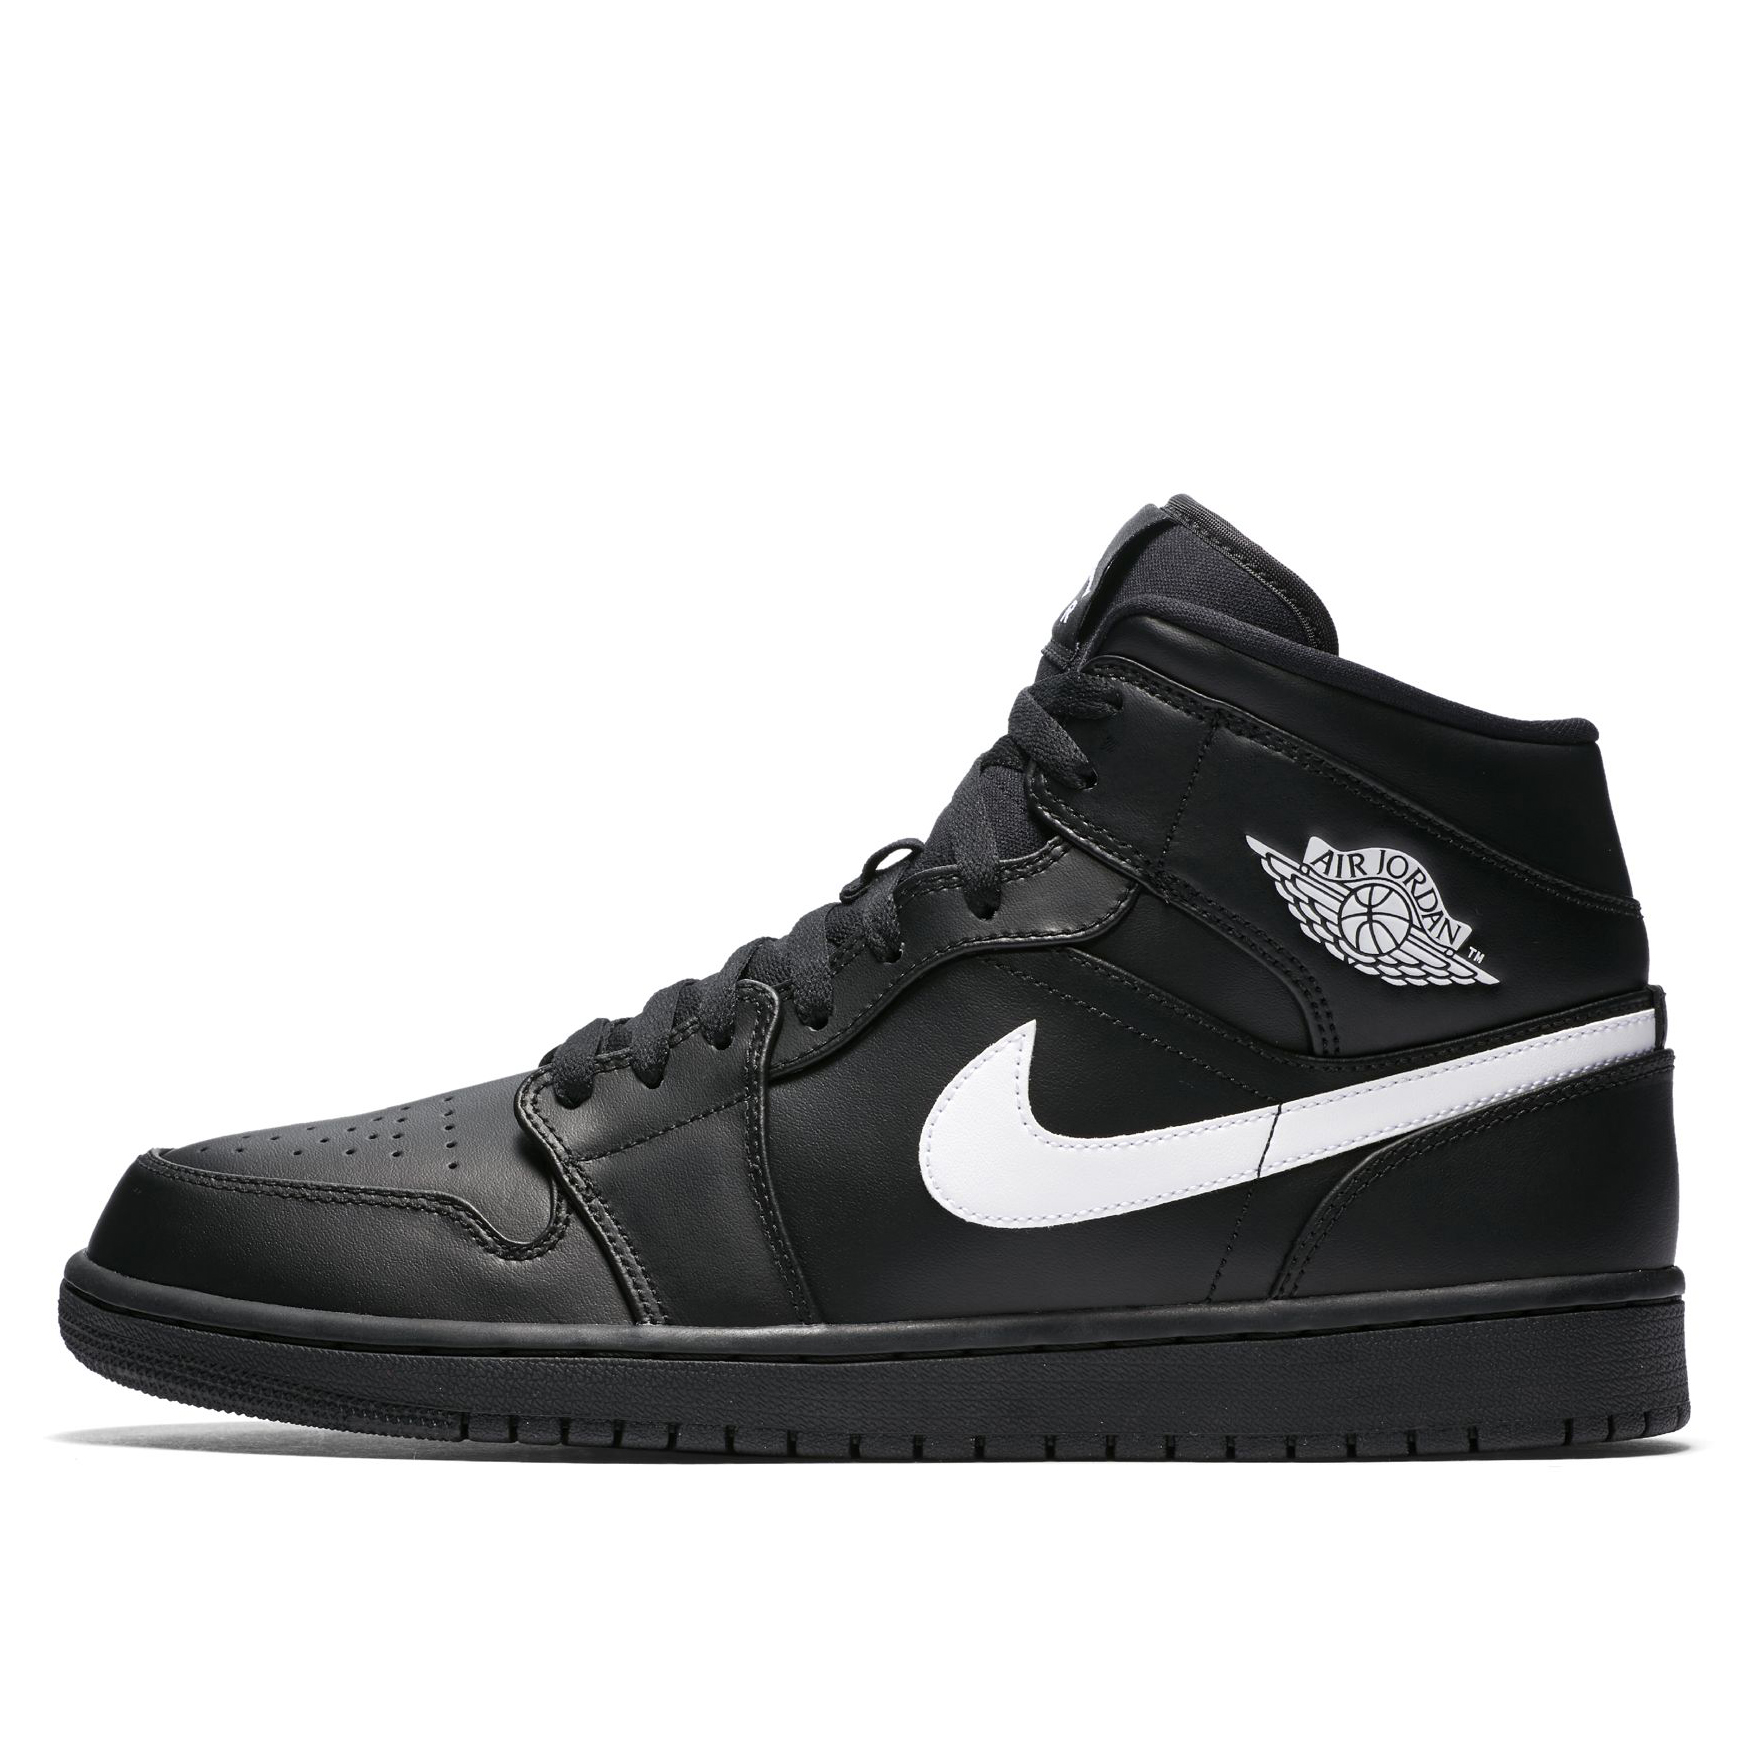 845c407cdc19 ... Air Jordan 1 Mid 554724 049 (3).jpg ...